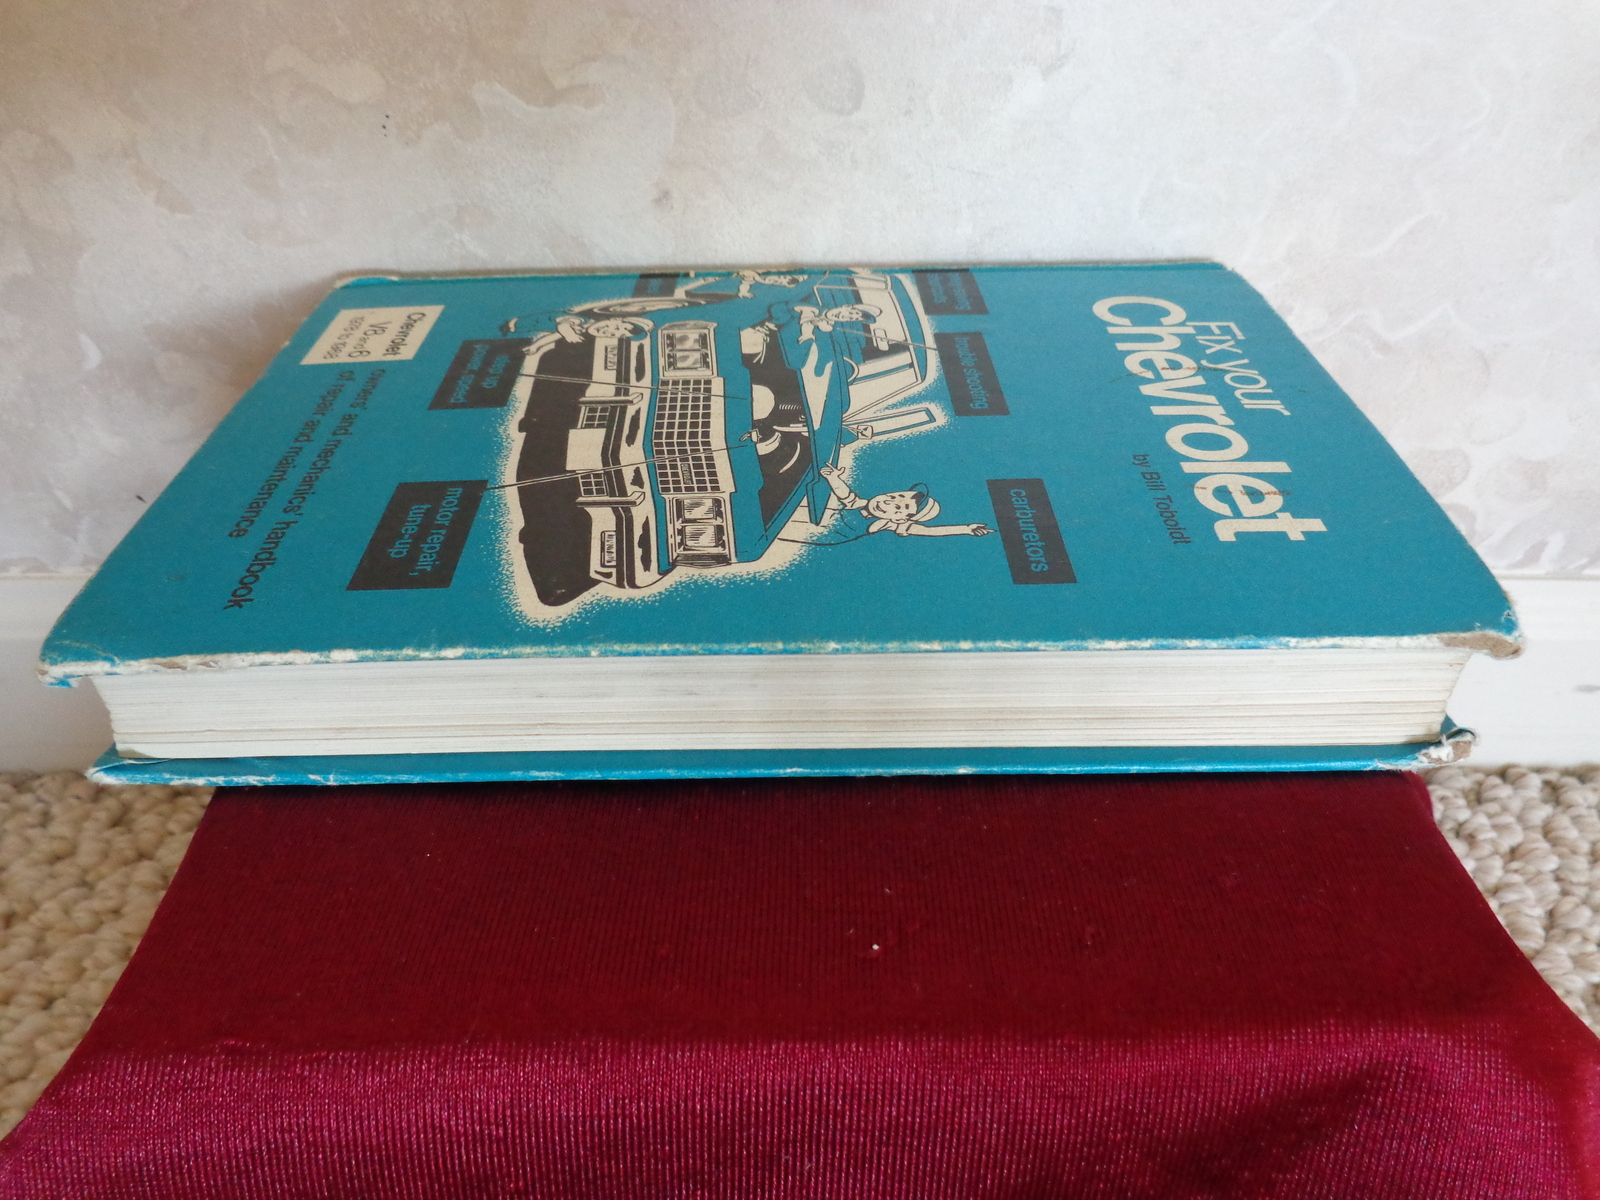 book FIX YOUR CHEVROLET by BILL TOBOLDT (1766) it is for V8 and 6, 1978 to 1968